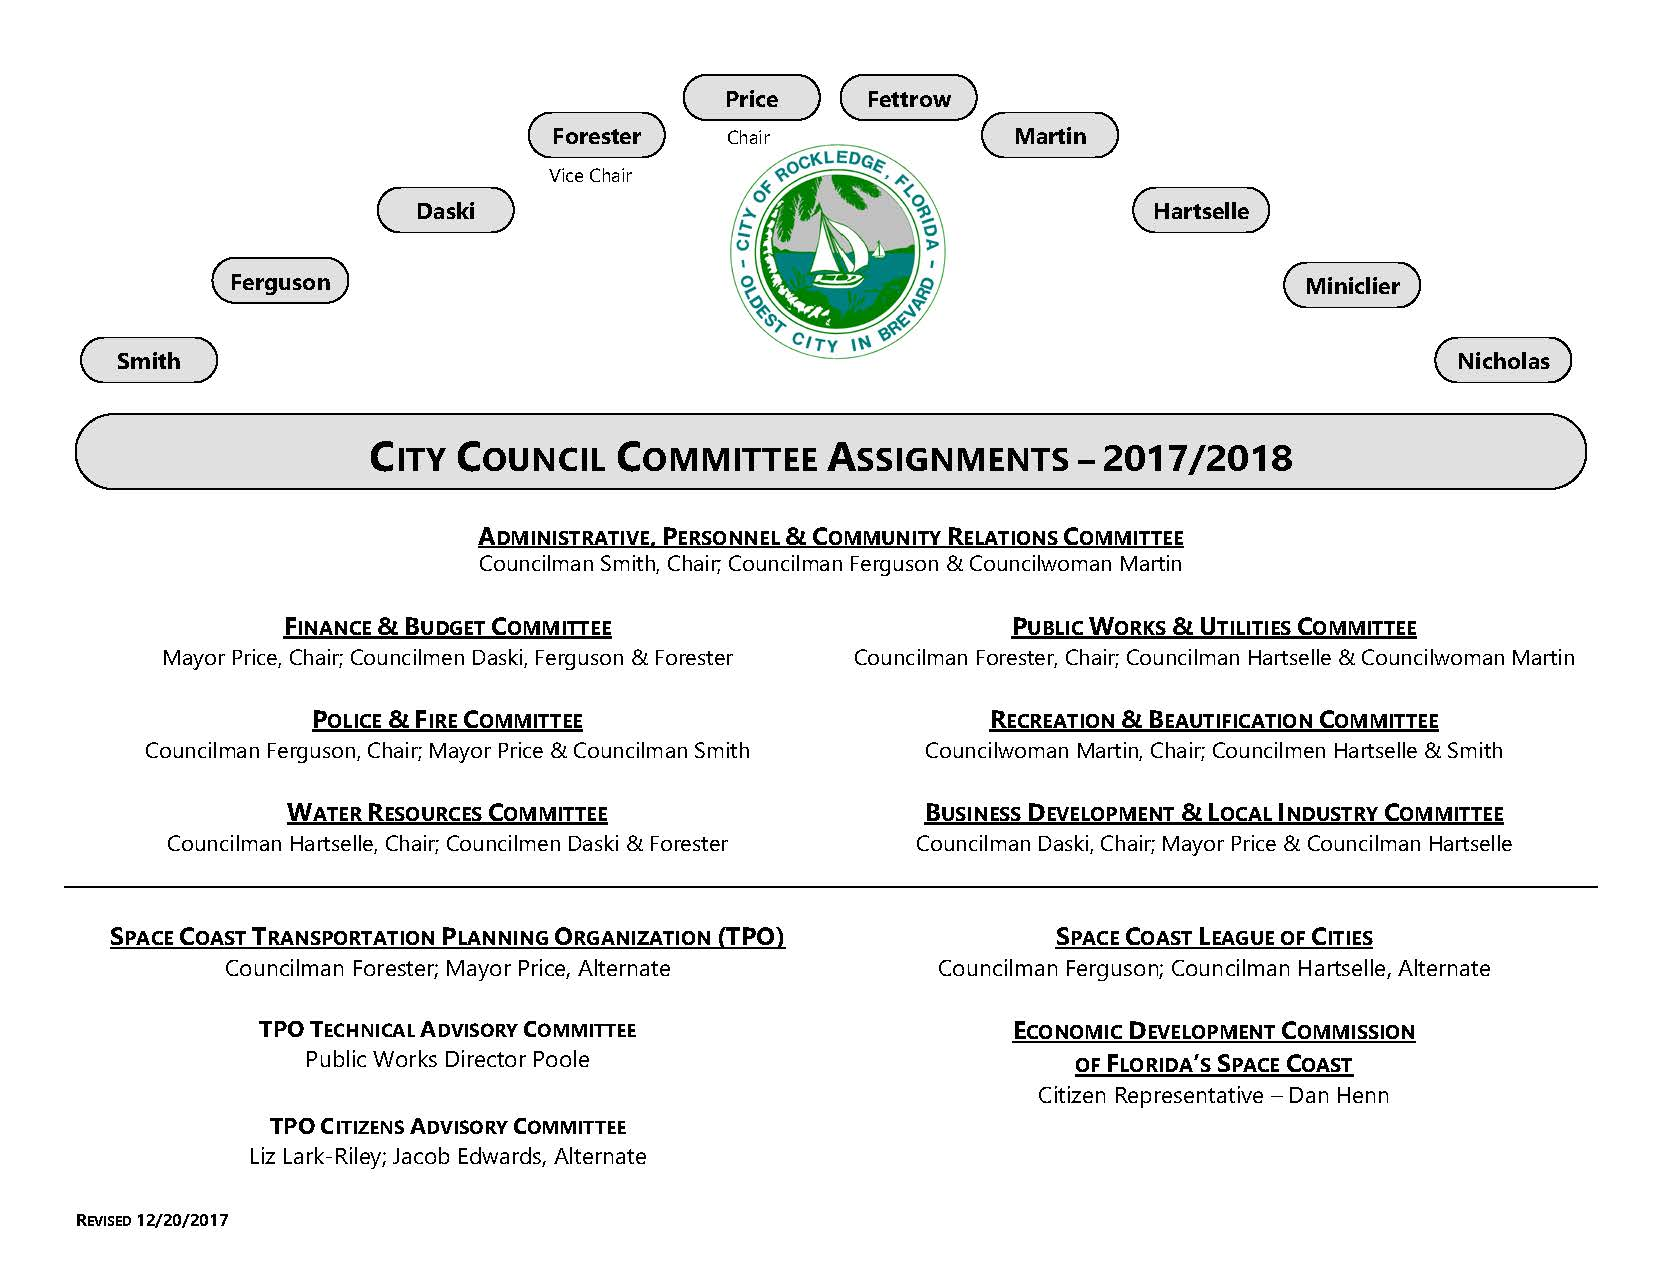 Seats-Committees 2017-2018